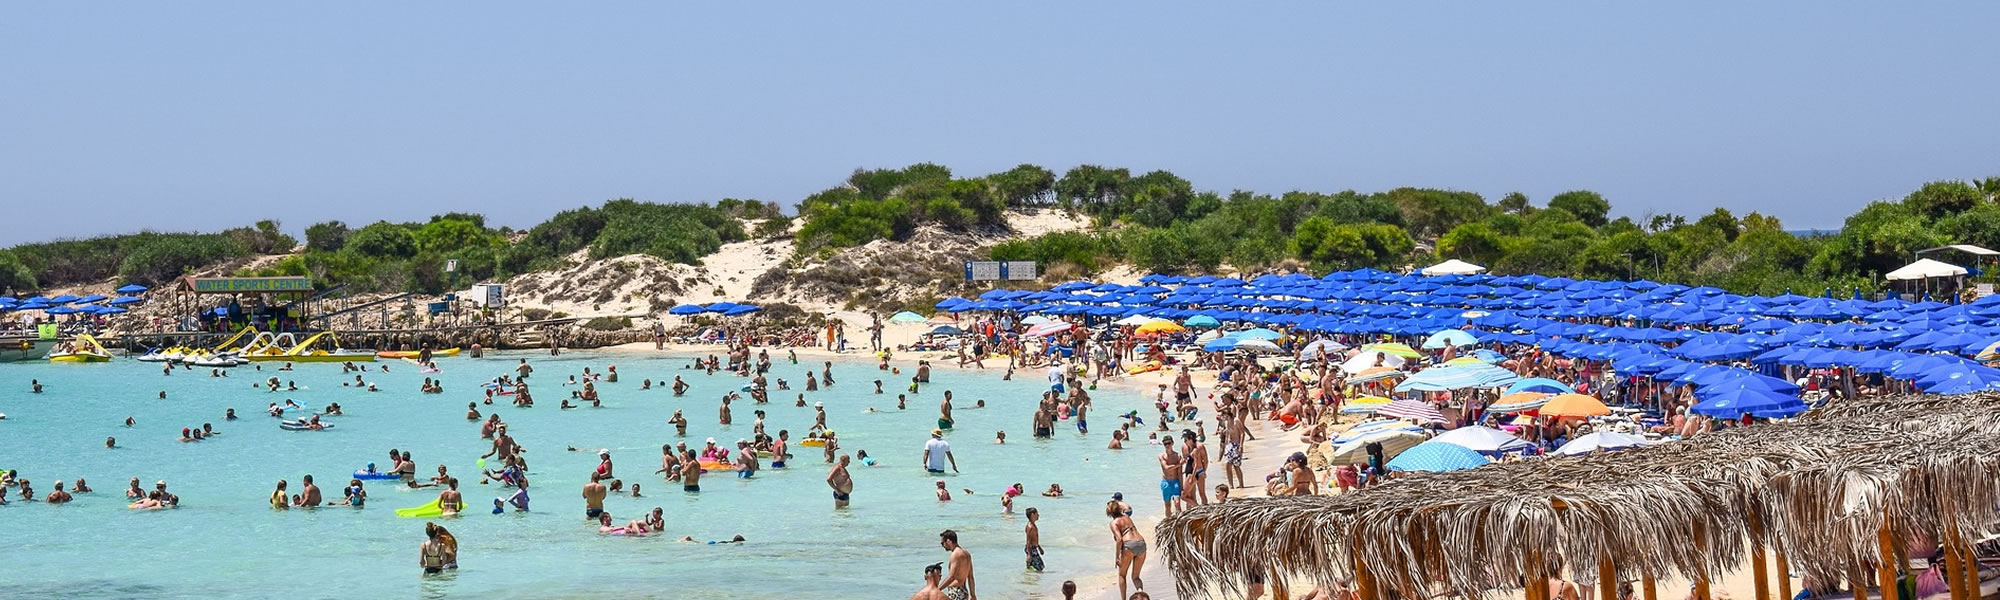 ayia napa dating Discover tourist attractions in ayia napa such as the famous sea palaces enjoy  the  20 different tombs dating back to the neolithic period macronissos tombs .